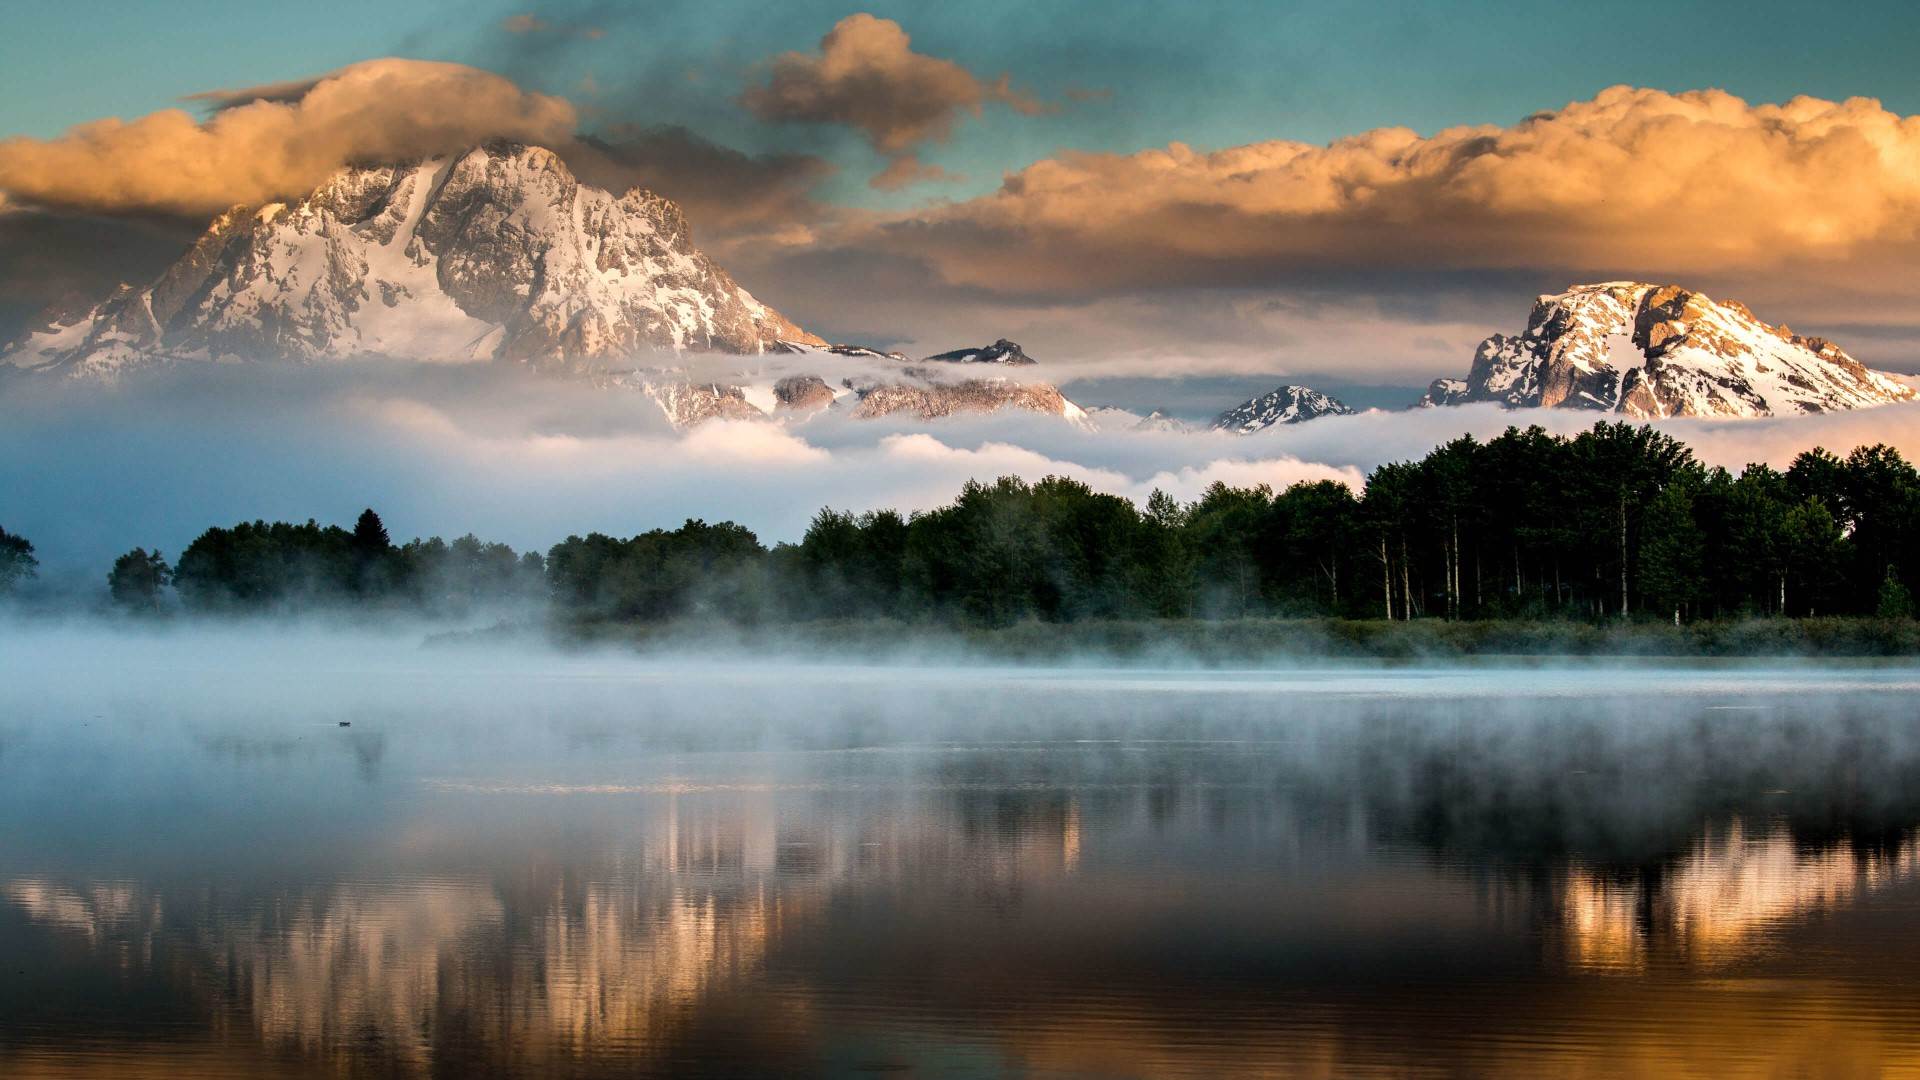 General 1920x1080 nature landscape trees mountains mist clouds sunset lake Grand Teton National Park Wyoming USA